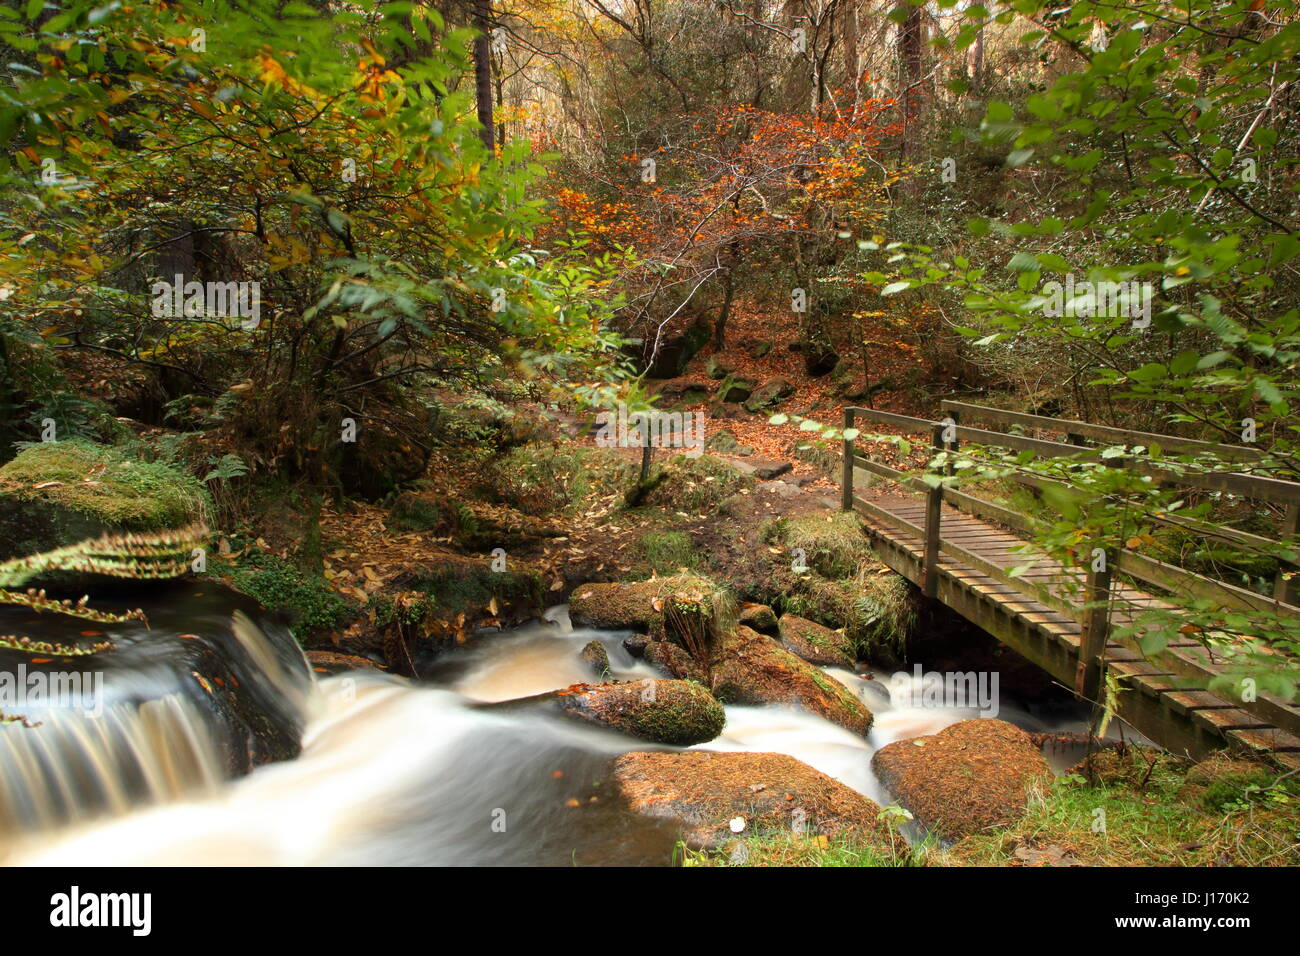 Stunning autumn foliage in woodland in the scenic Wyming Brook nature reserve in Sheffield city's Peak District, - Stock Image